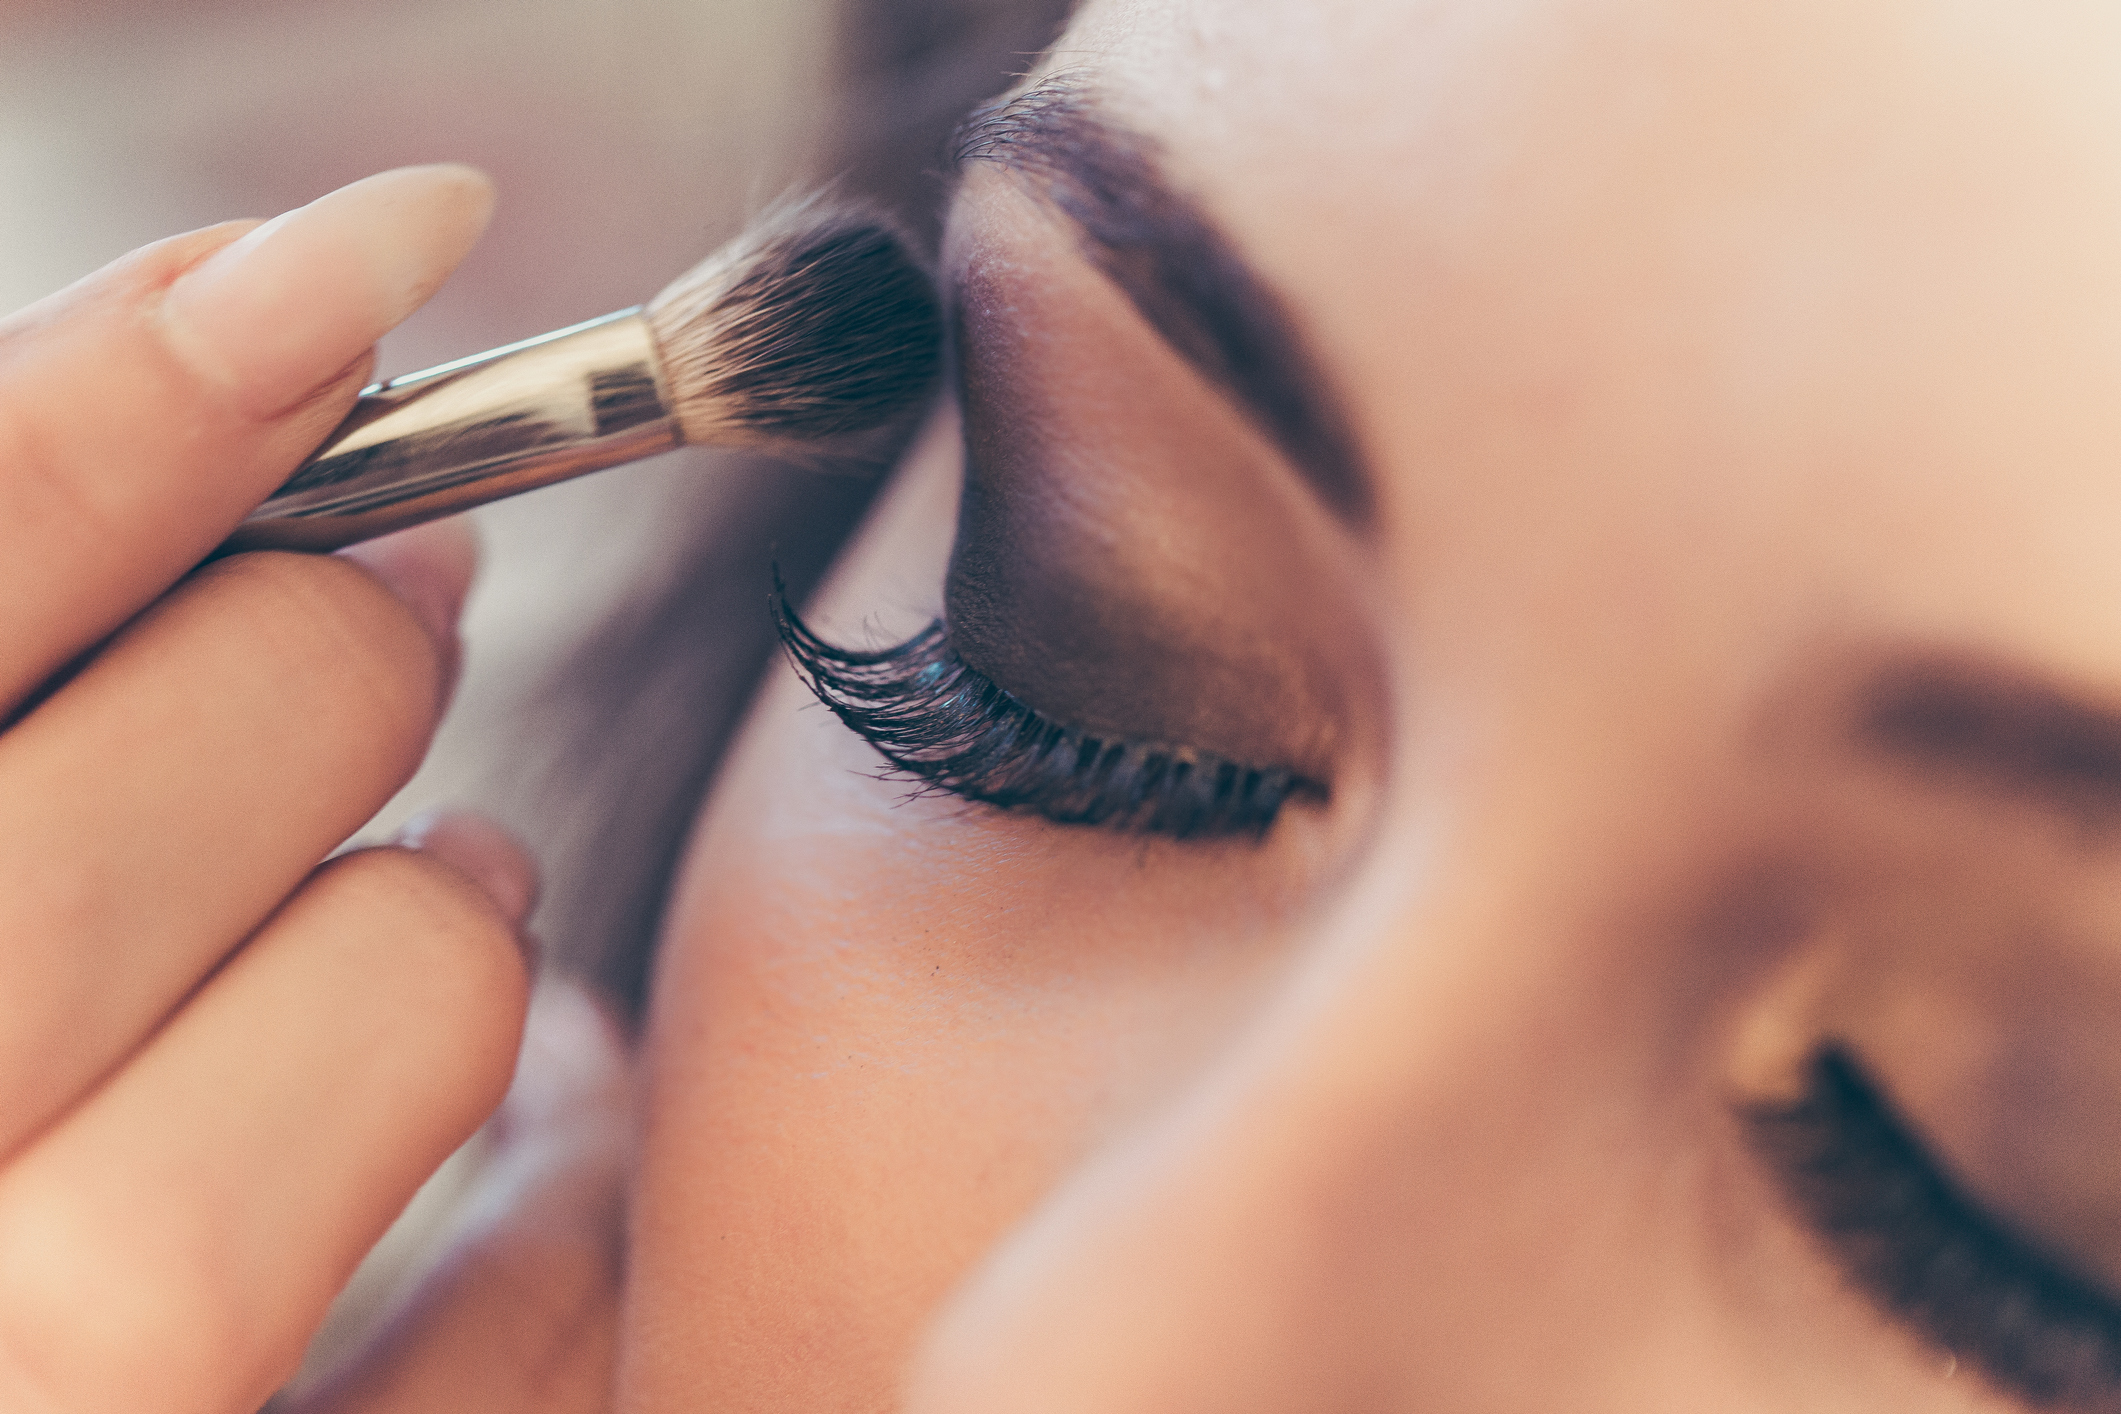 Head down to John Lewis's big beauty weekend for talks, treatments and masterclasses